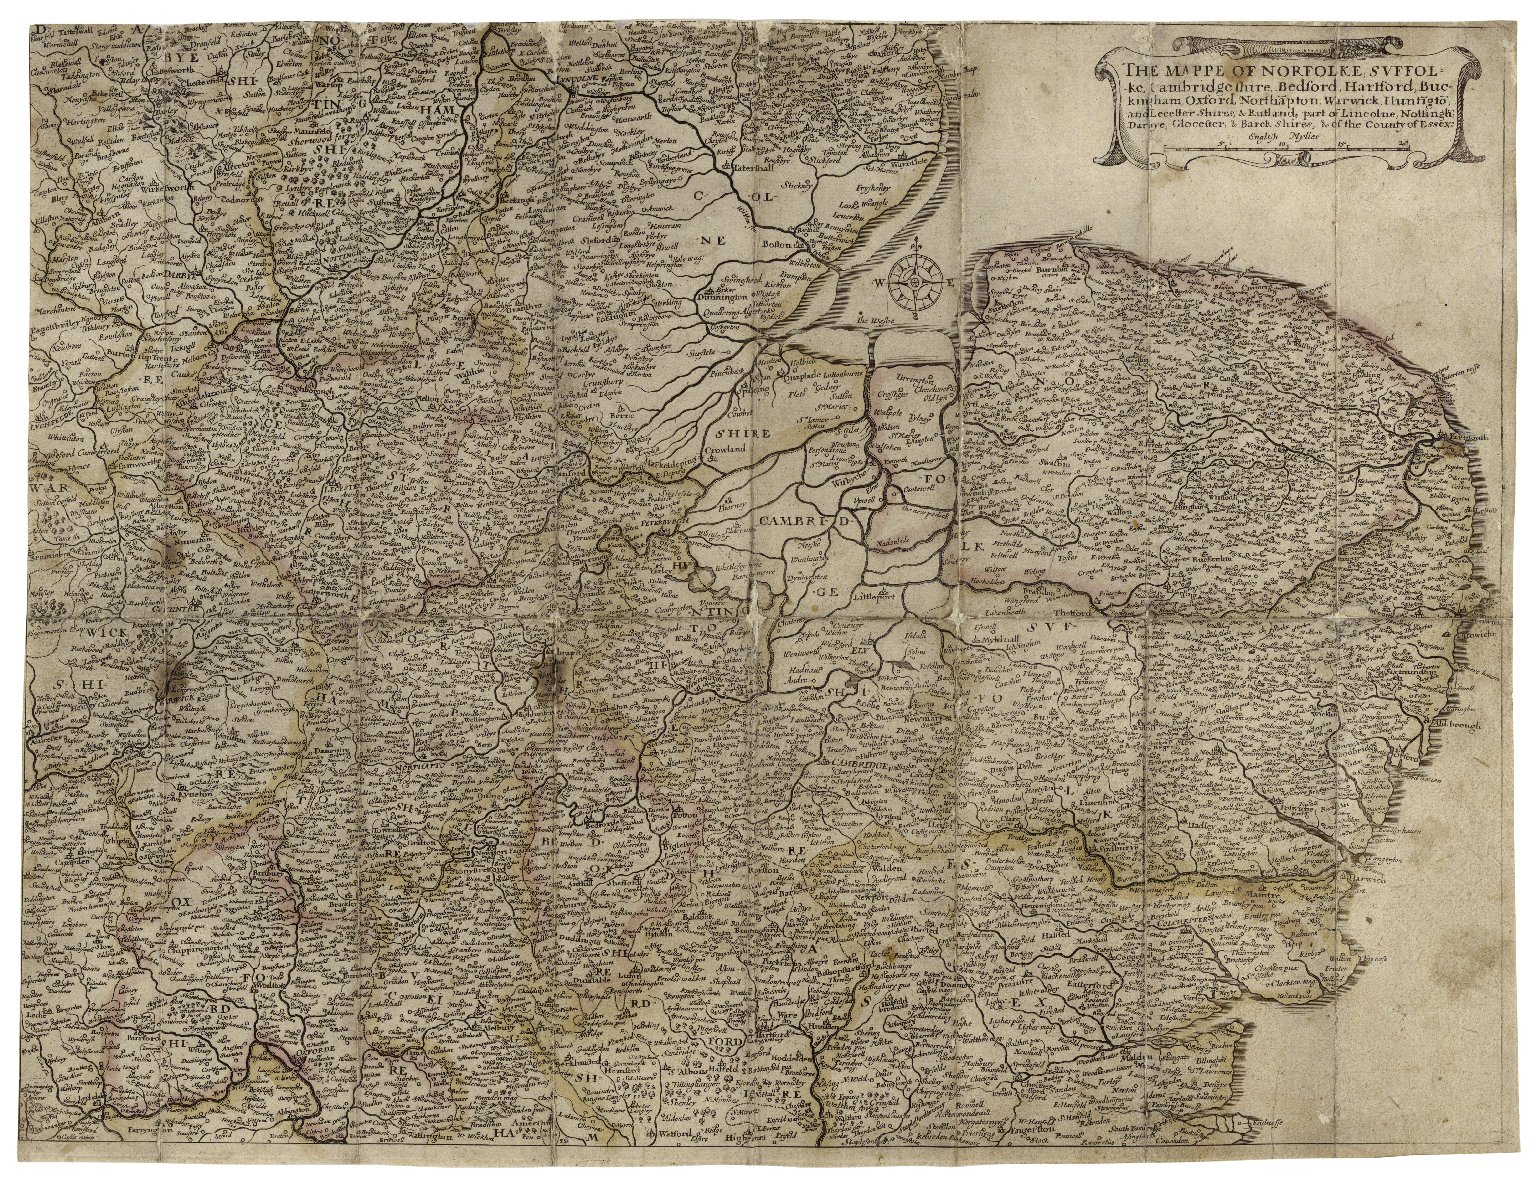 The kingdome of England & principality of Wales, exactly described : whith [sic] euery sheere, & the small townes in euery one of them, in six mappes, portable for euery mans pocket, ...